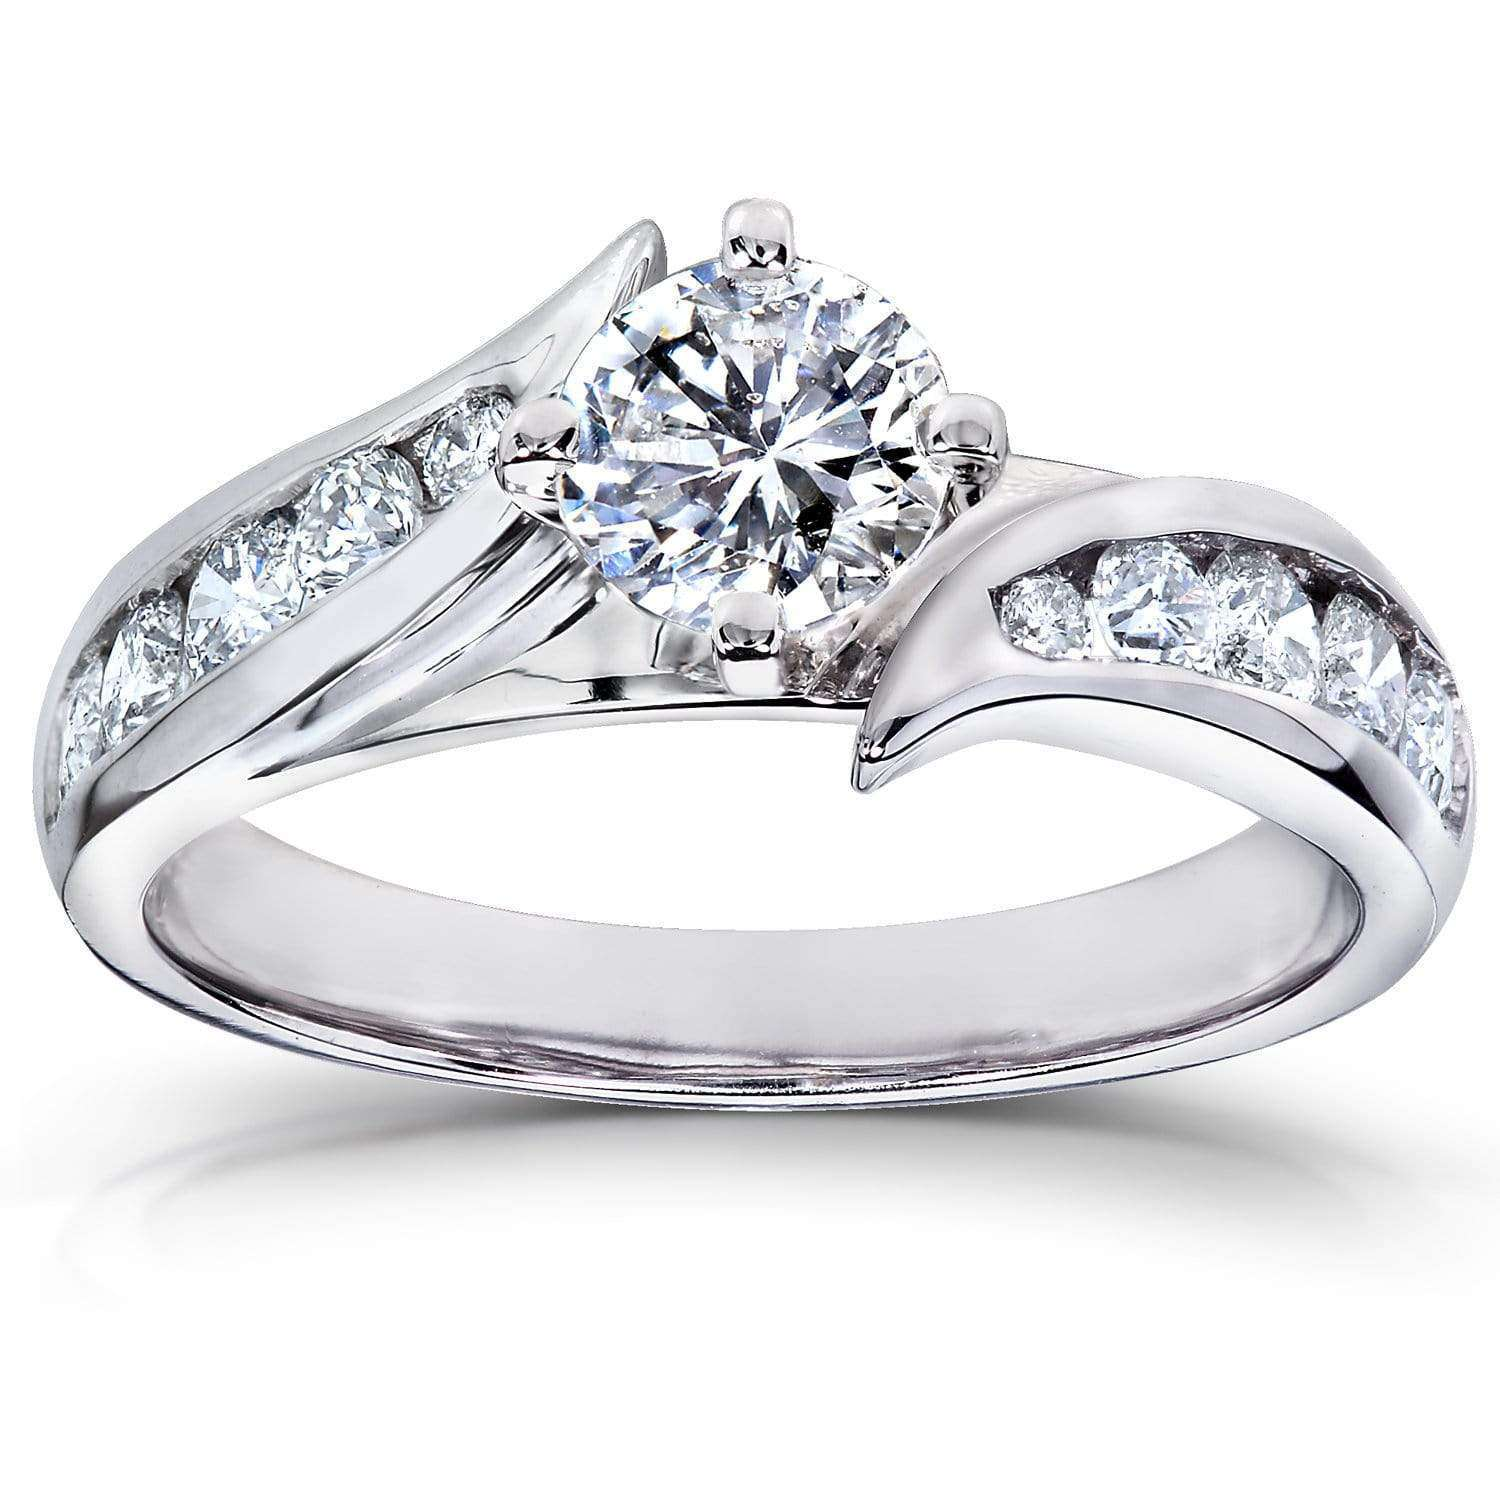 Discounts Round Diamond Engagement Ring 1 CTW in Platinum - 4.5